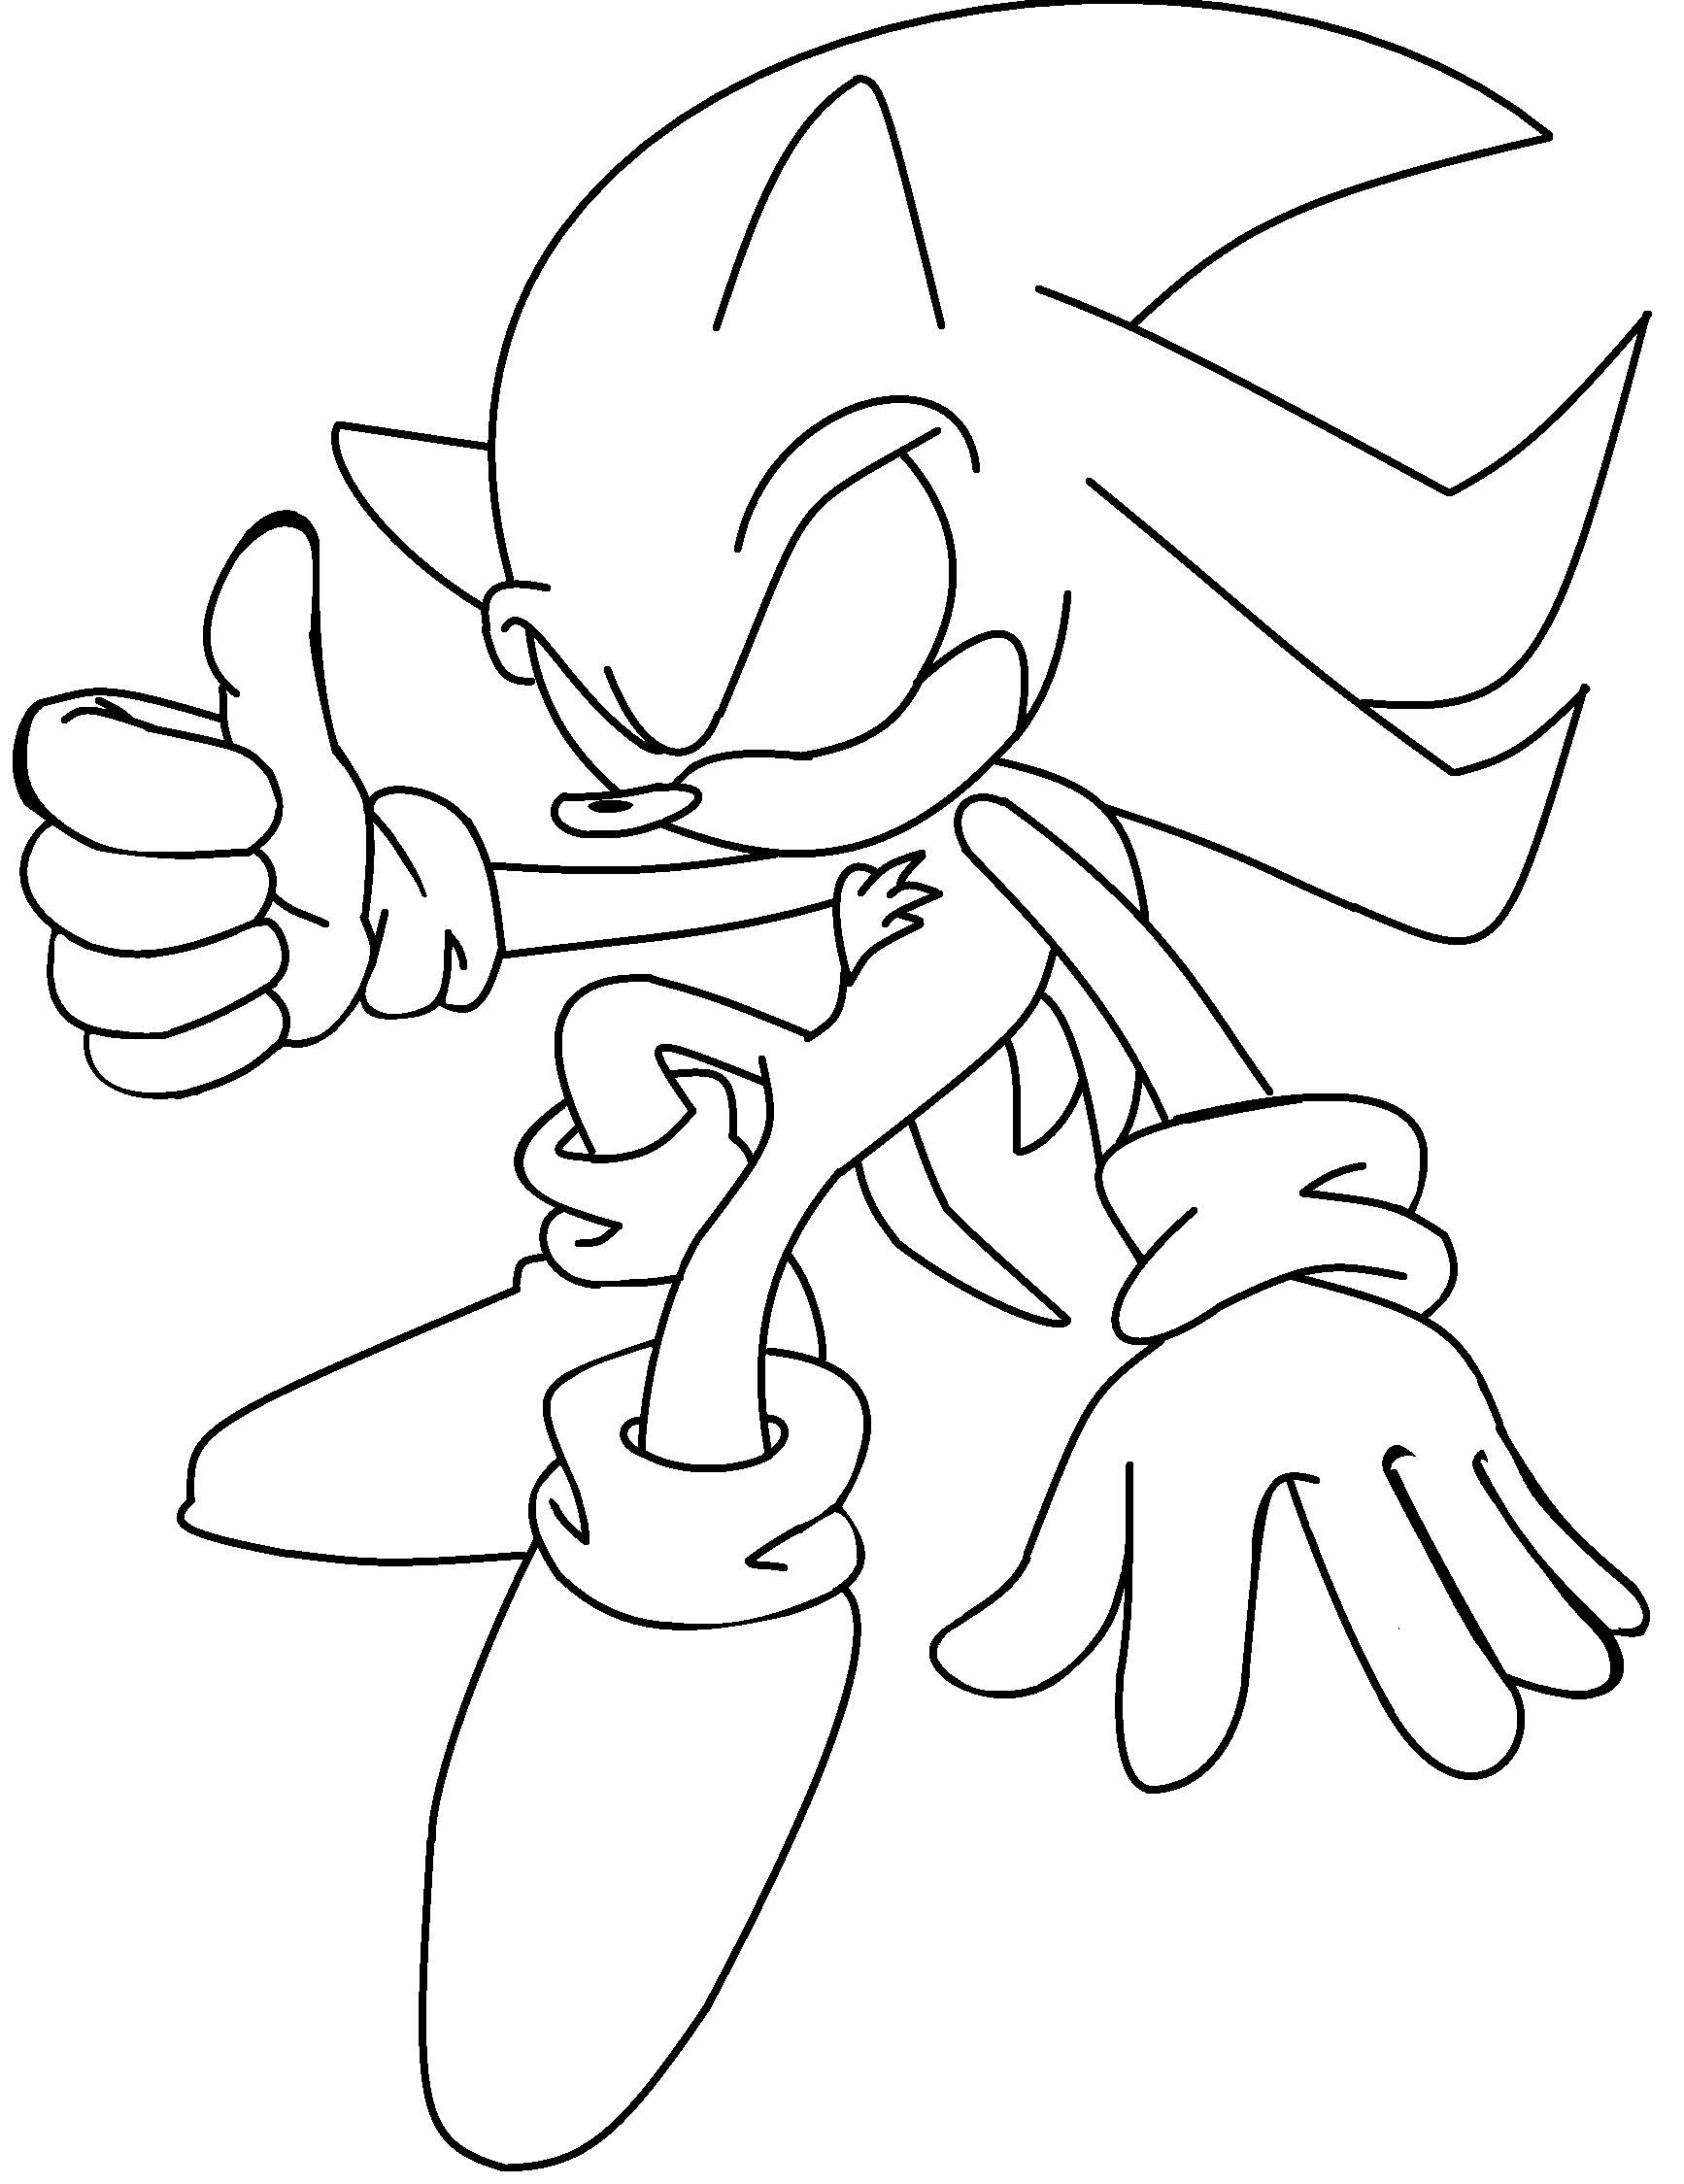 Super Silver Sonic And Shadow Coloring Pages Coloring Pages